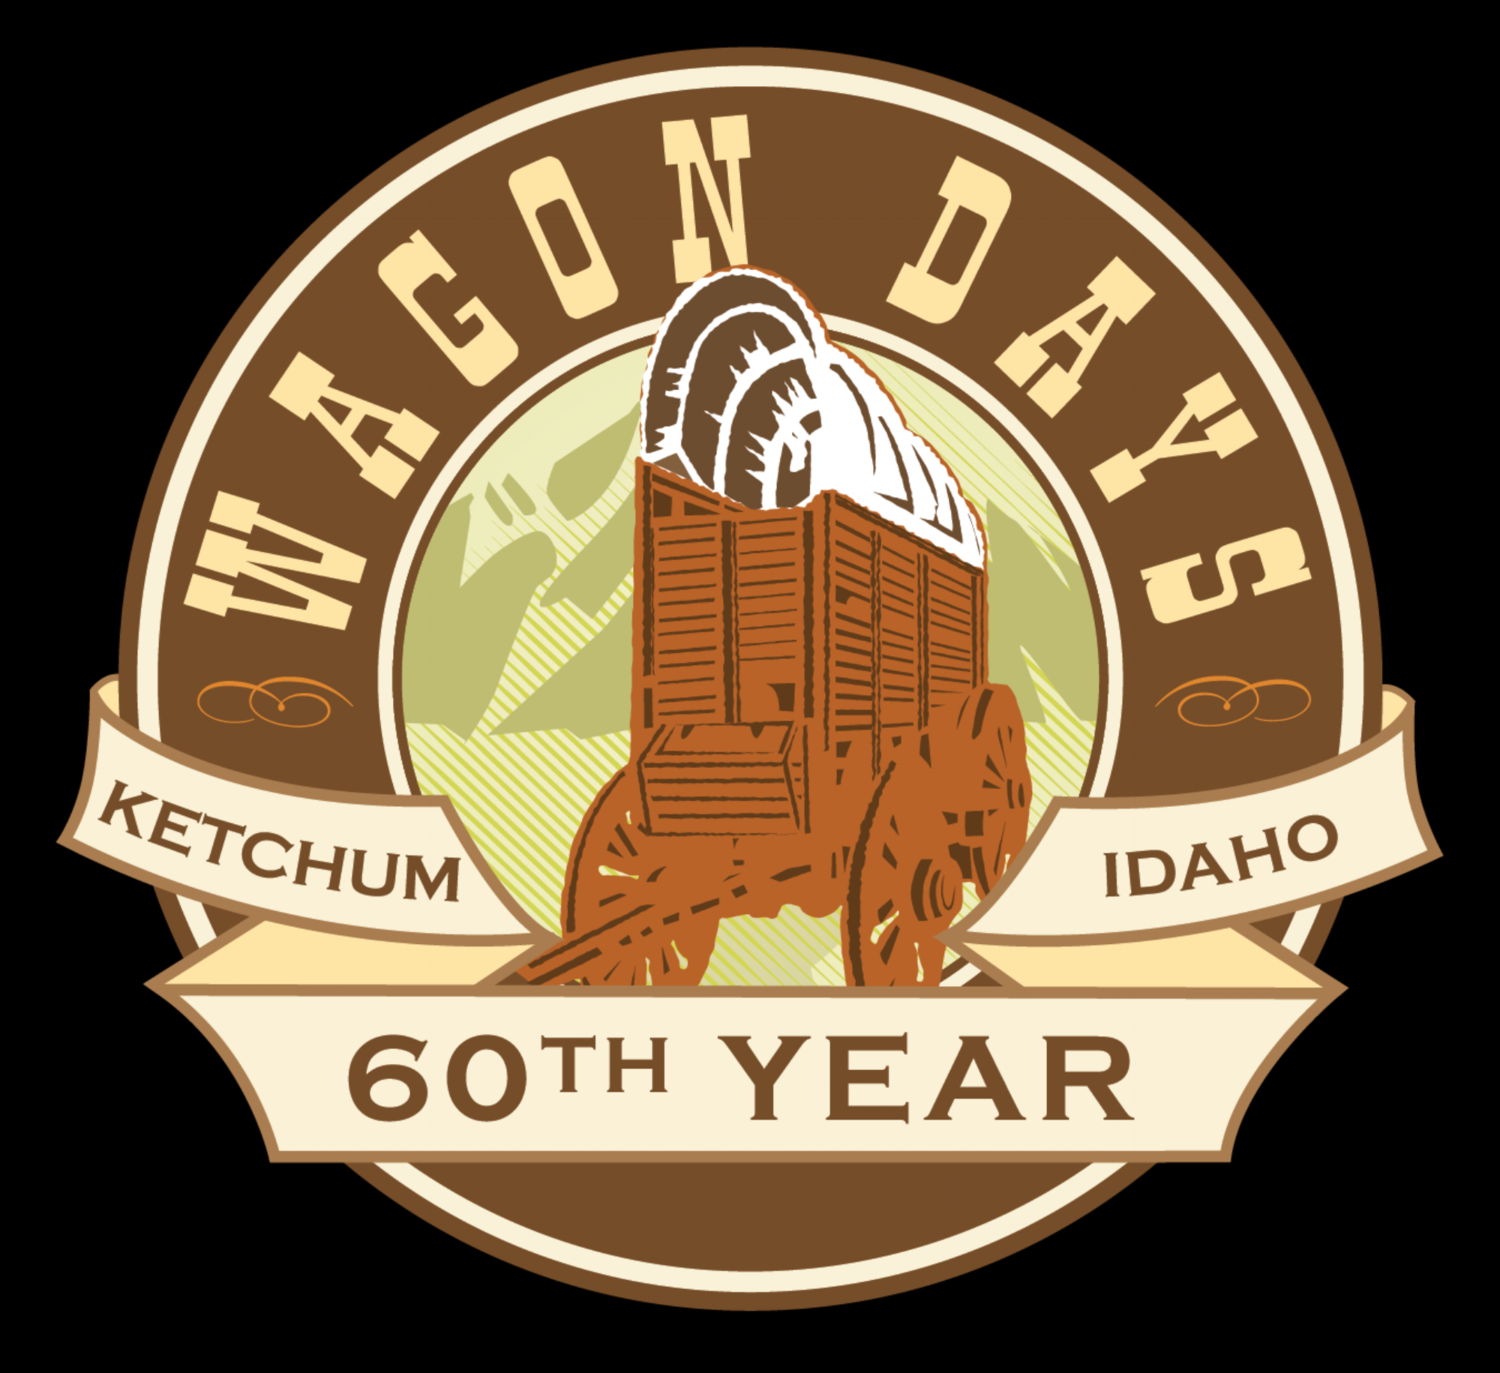 Wagon Days Ketchum, September 1 & 2